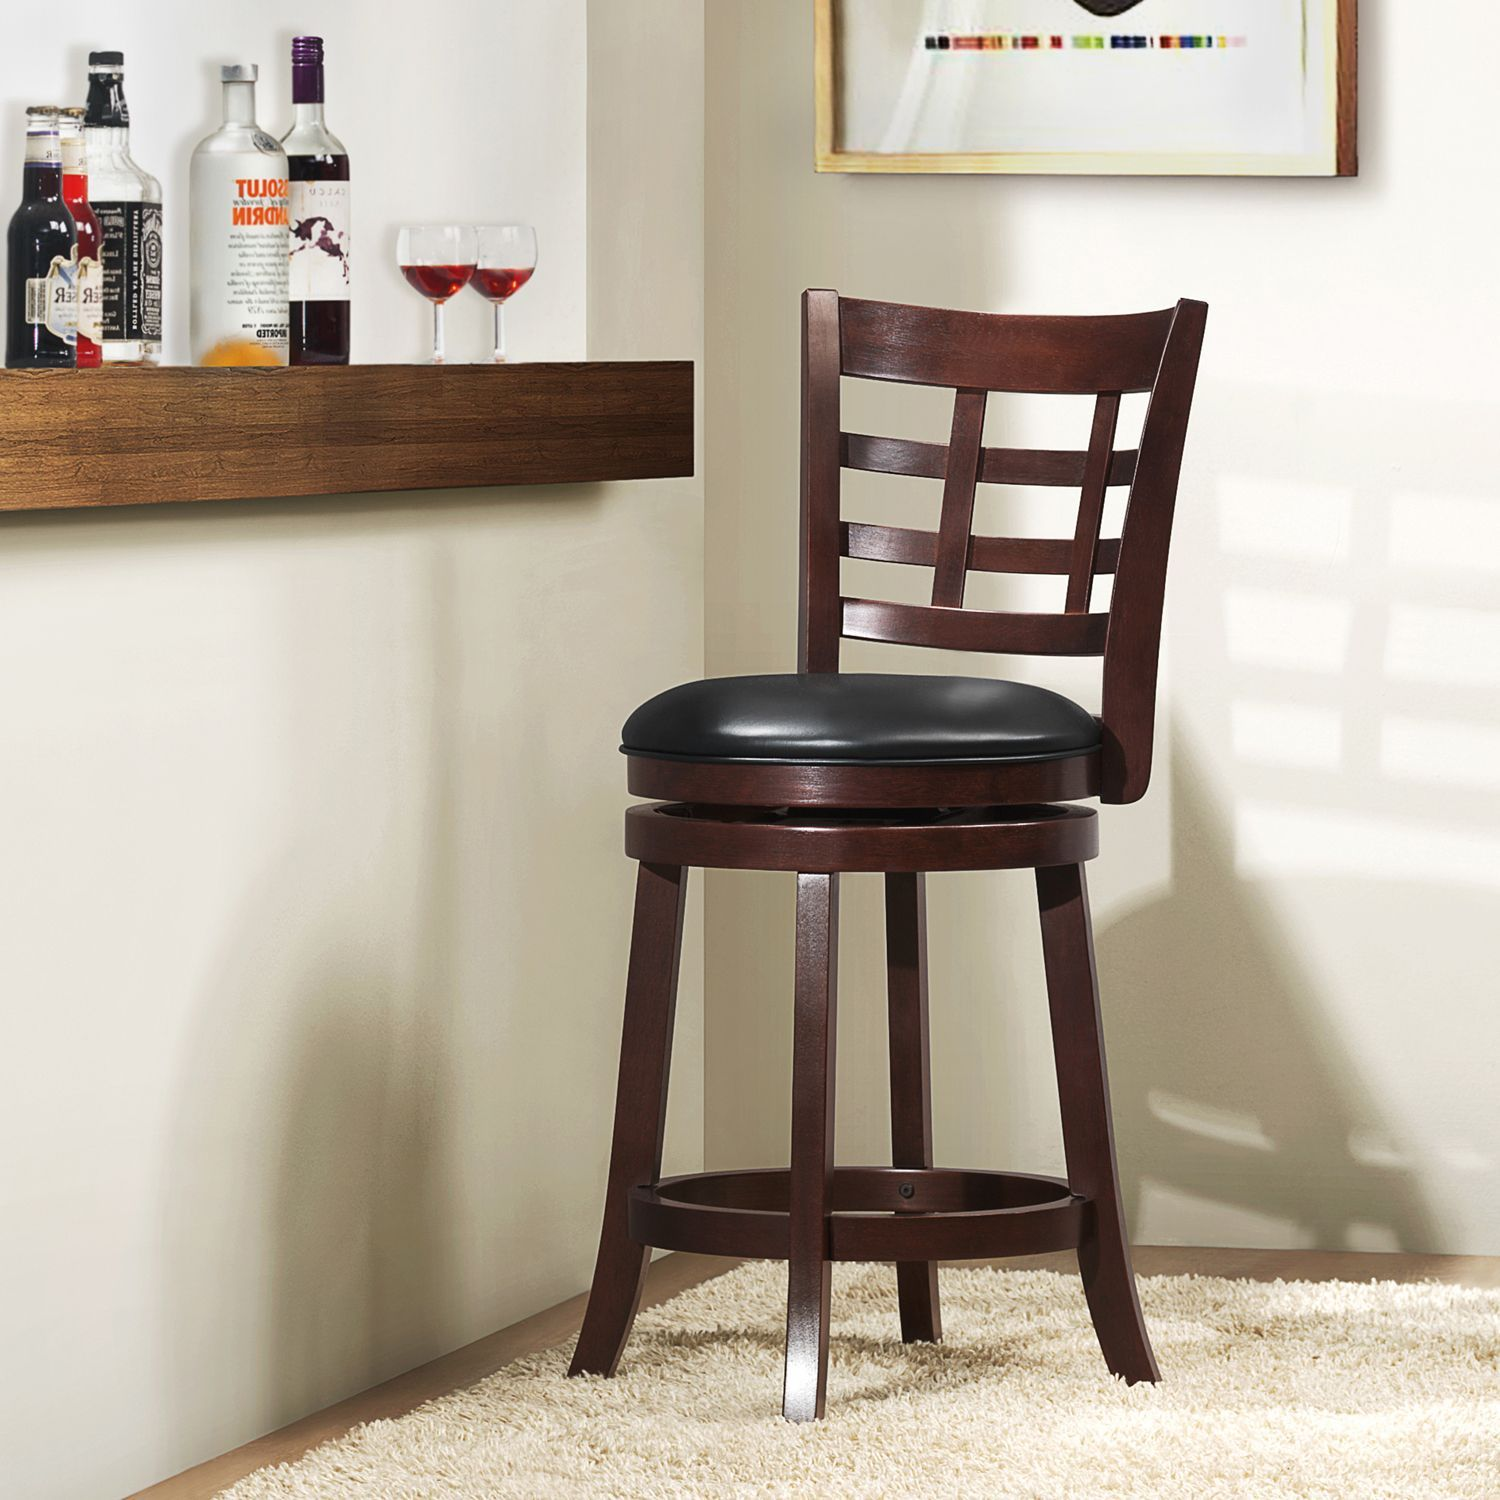 8 Stunning Bar Counter Chairs Are Waiting For You All You Need To